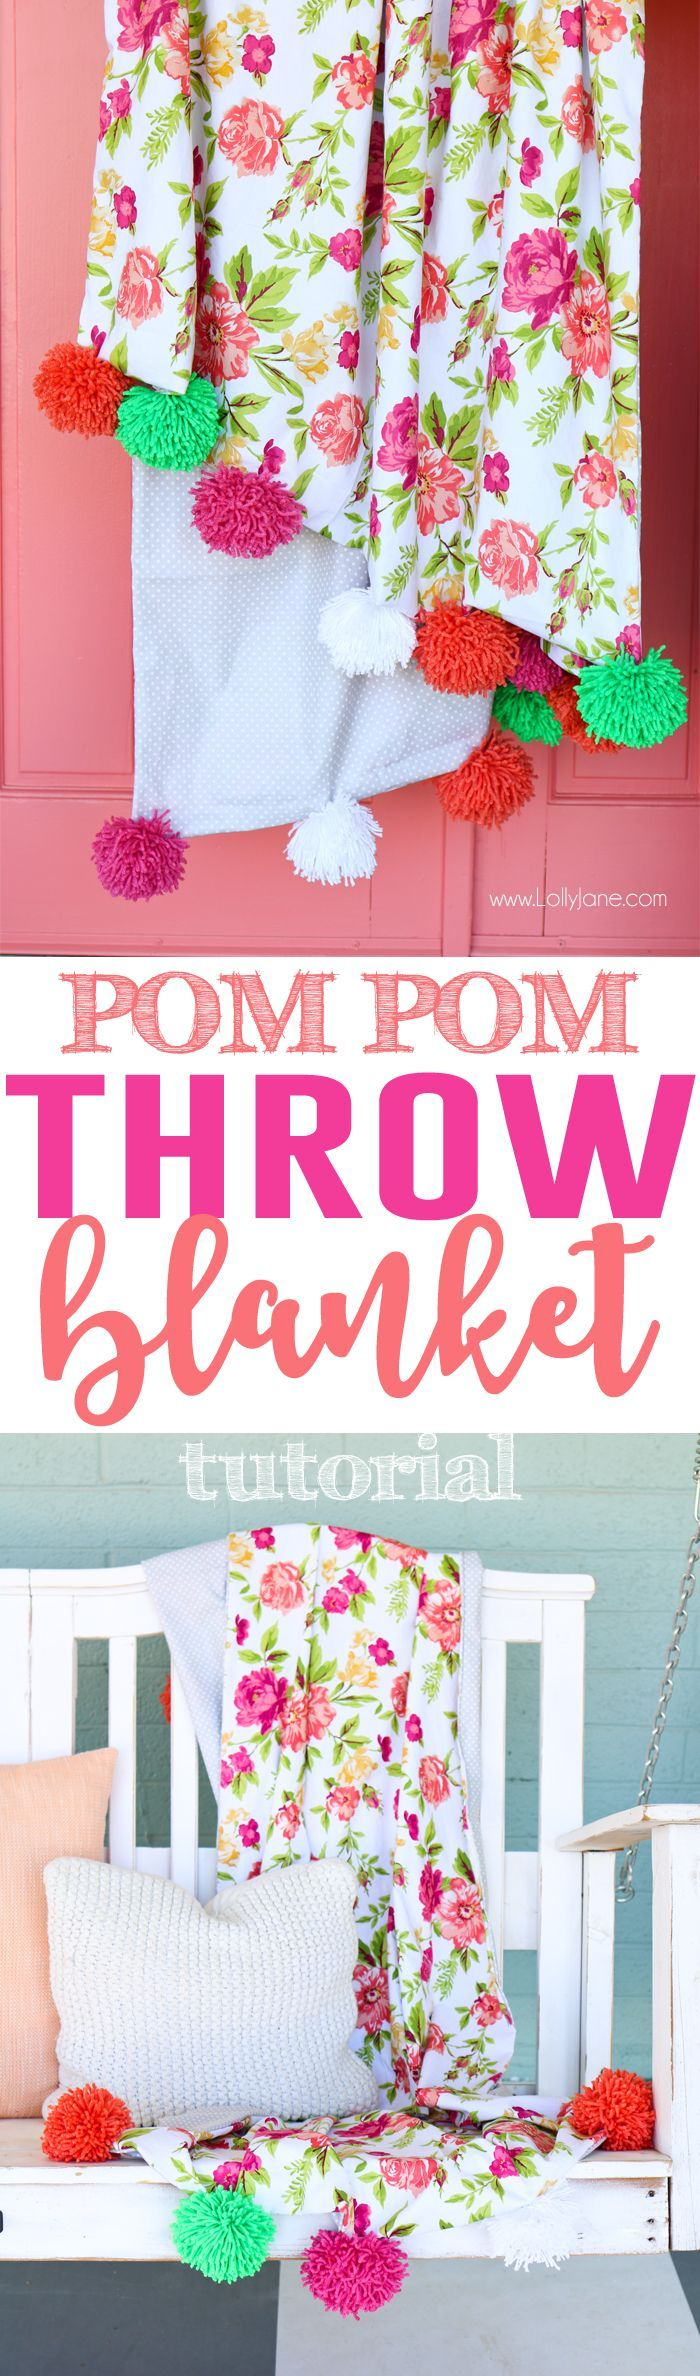 DIY Pom Pom Throw Blanket, so easy and CUTE! Great tutorial for sewers of any le...